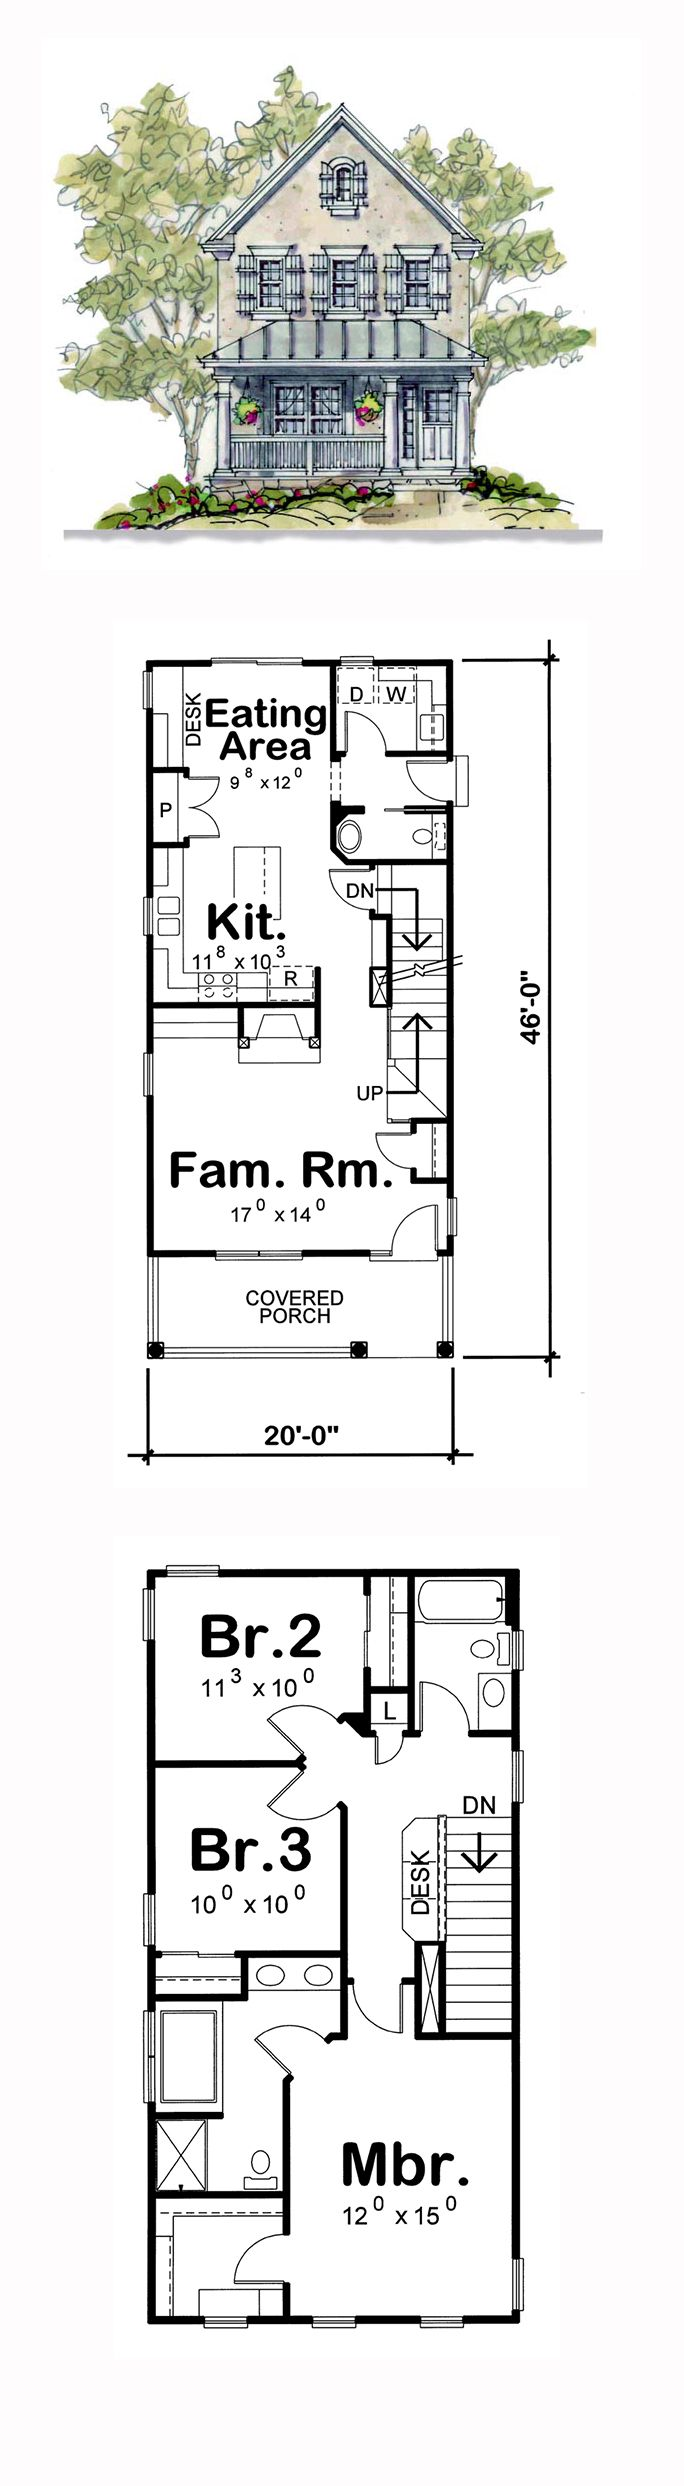 this charming narrow lot friendly garden city plan provied large country european house plan 66630